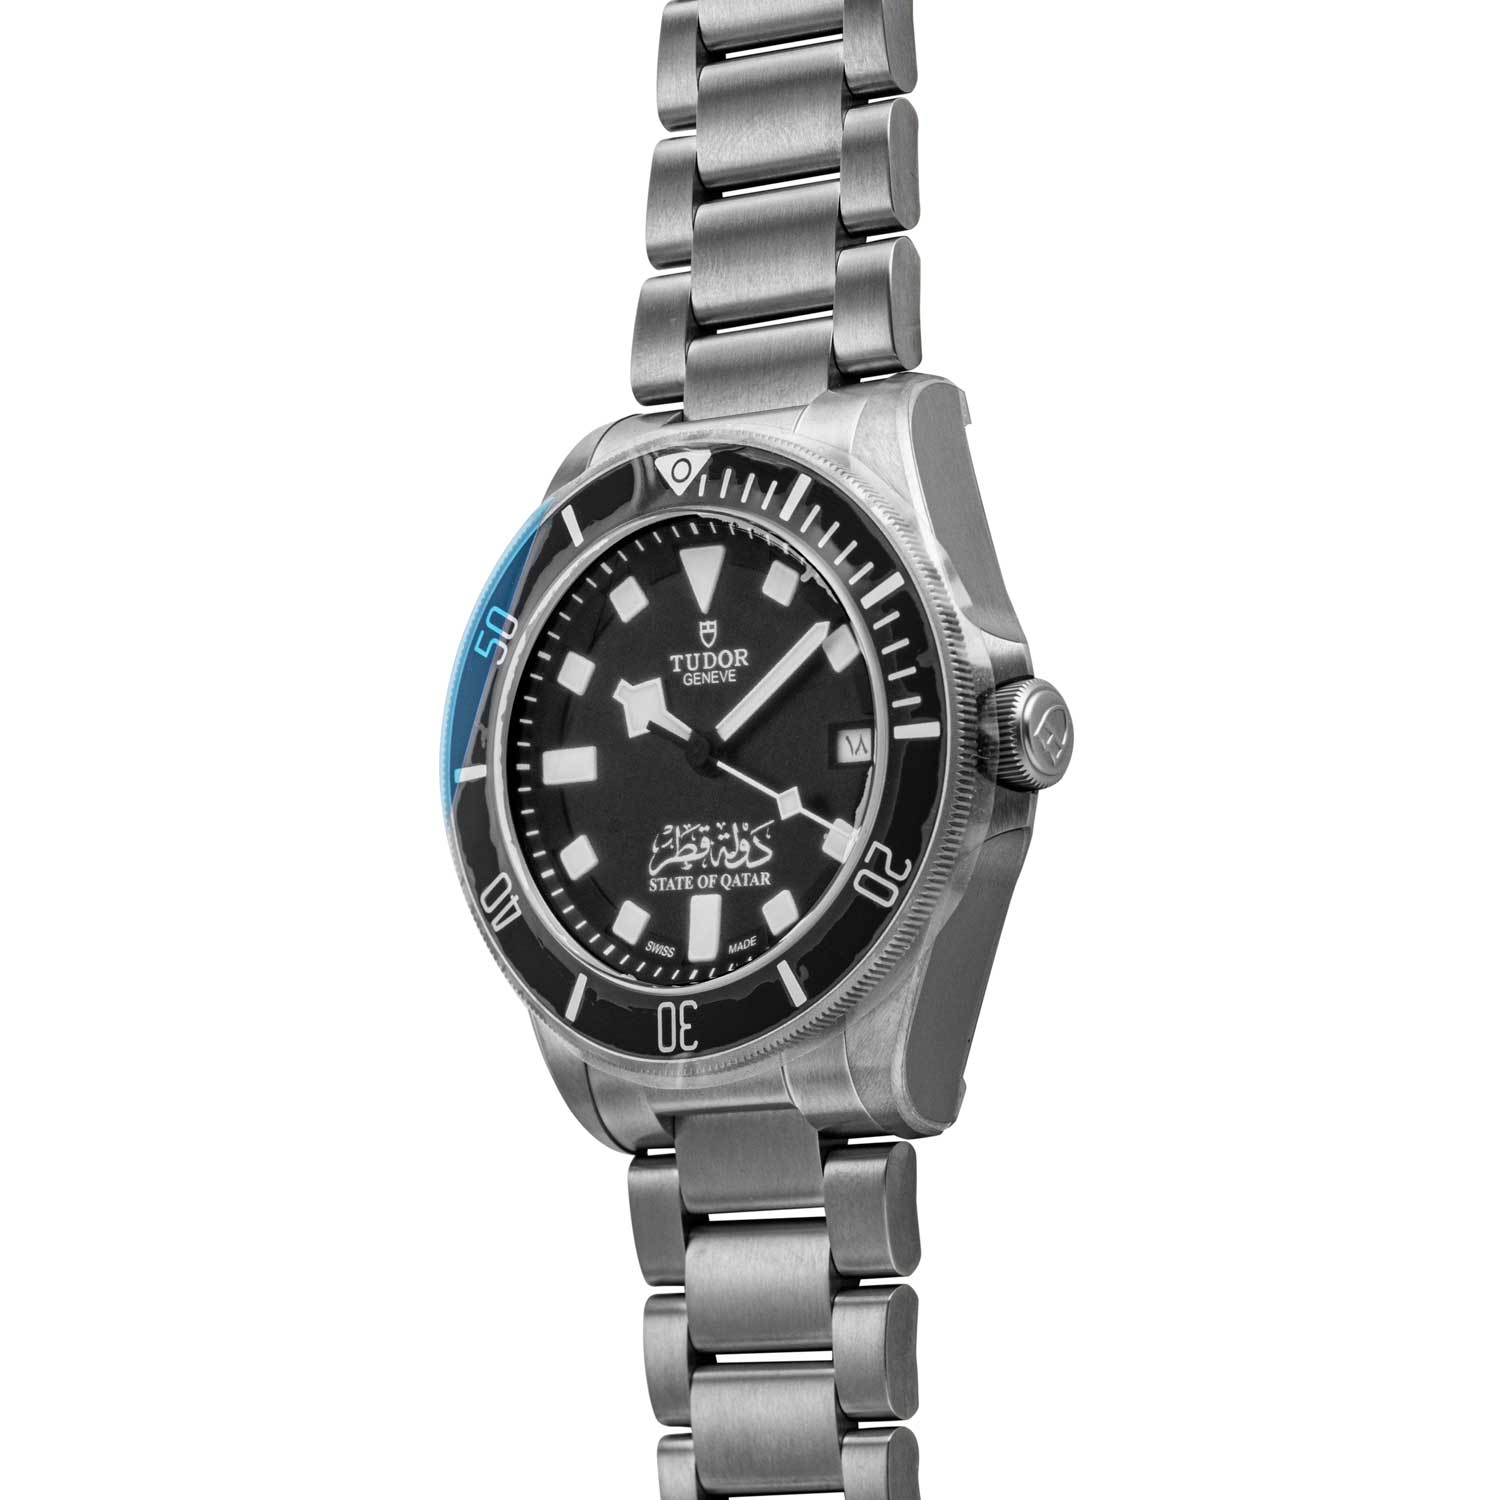 To showcase that the NOS Tudor State of Qatar Pelagos with a black dial, is in fact NOS, you can see that the watch still has its factory plastic wrapping on in the presented photographs; available for purchase through Shop.Revolution.Watch at the time of publication (©Revolution)